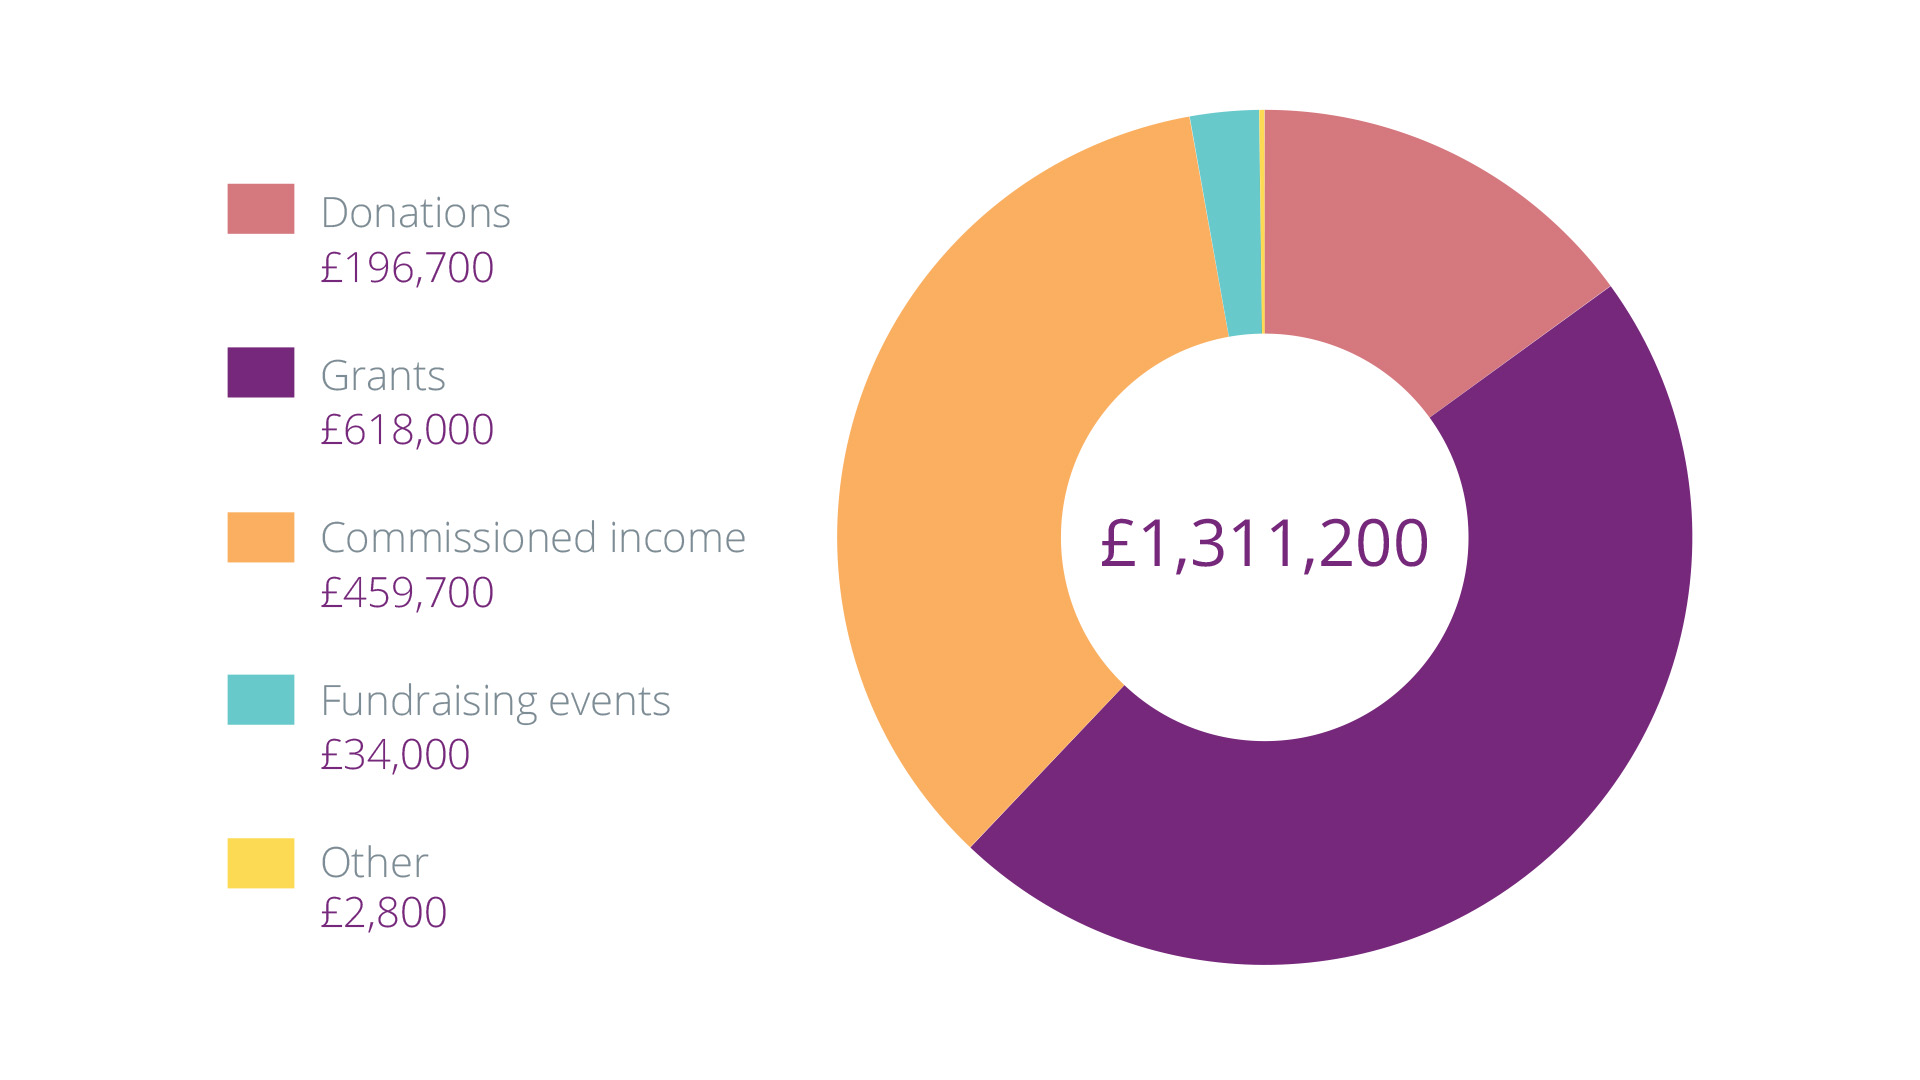 Donations: £196,700; Grants: £618,000; Commissioned income: £459,700; Fundraising events: £34,000; Other income: £2,800; Total income: £1,311,200